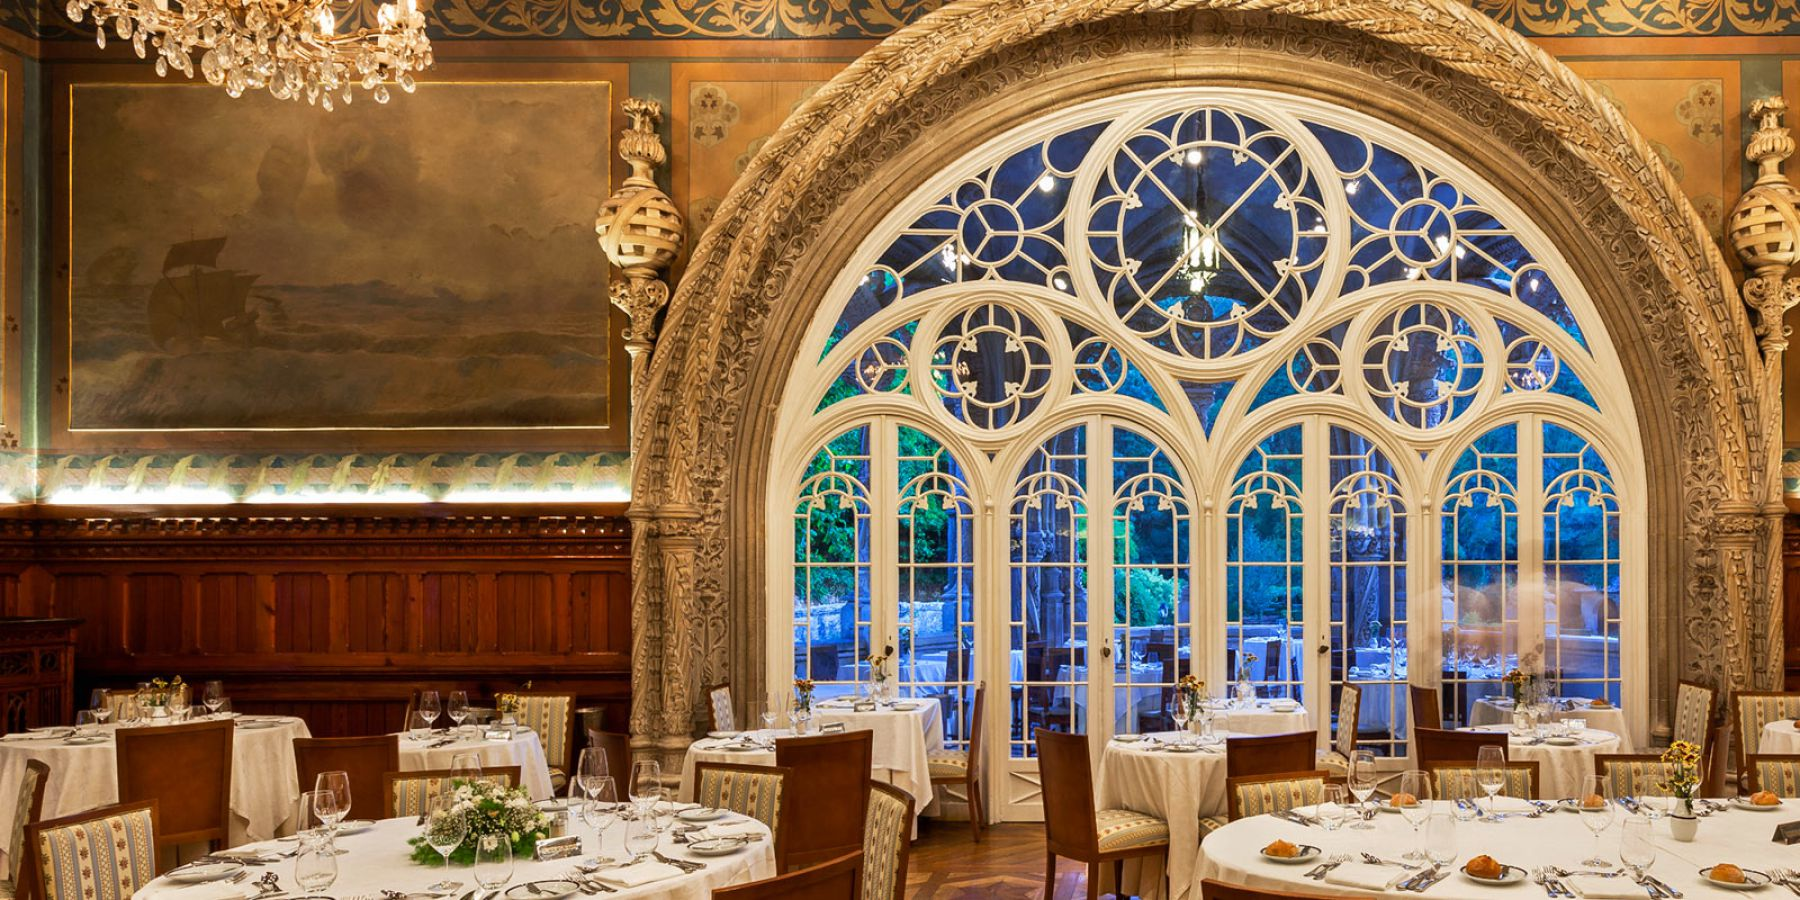 Restaurants Bussaco Palace Hotel